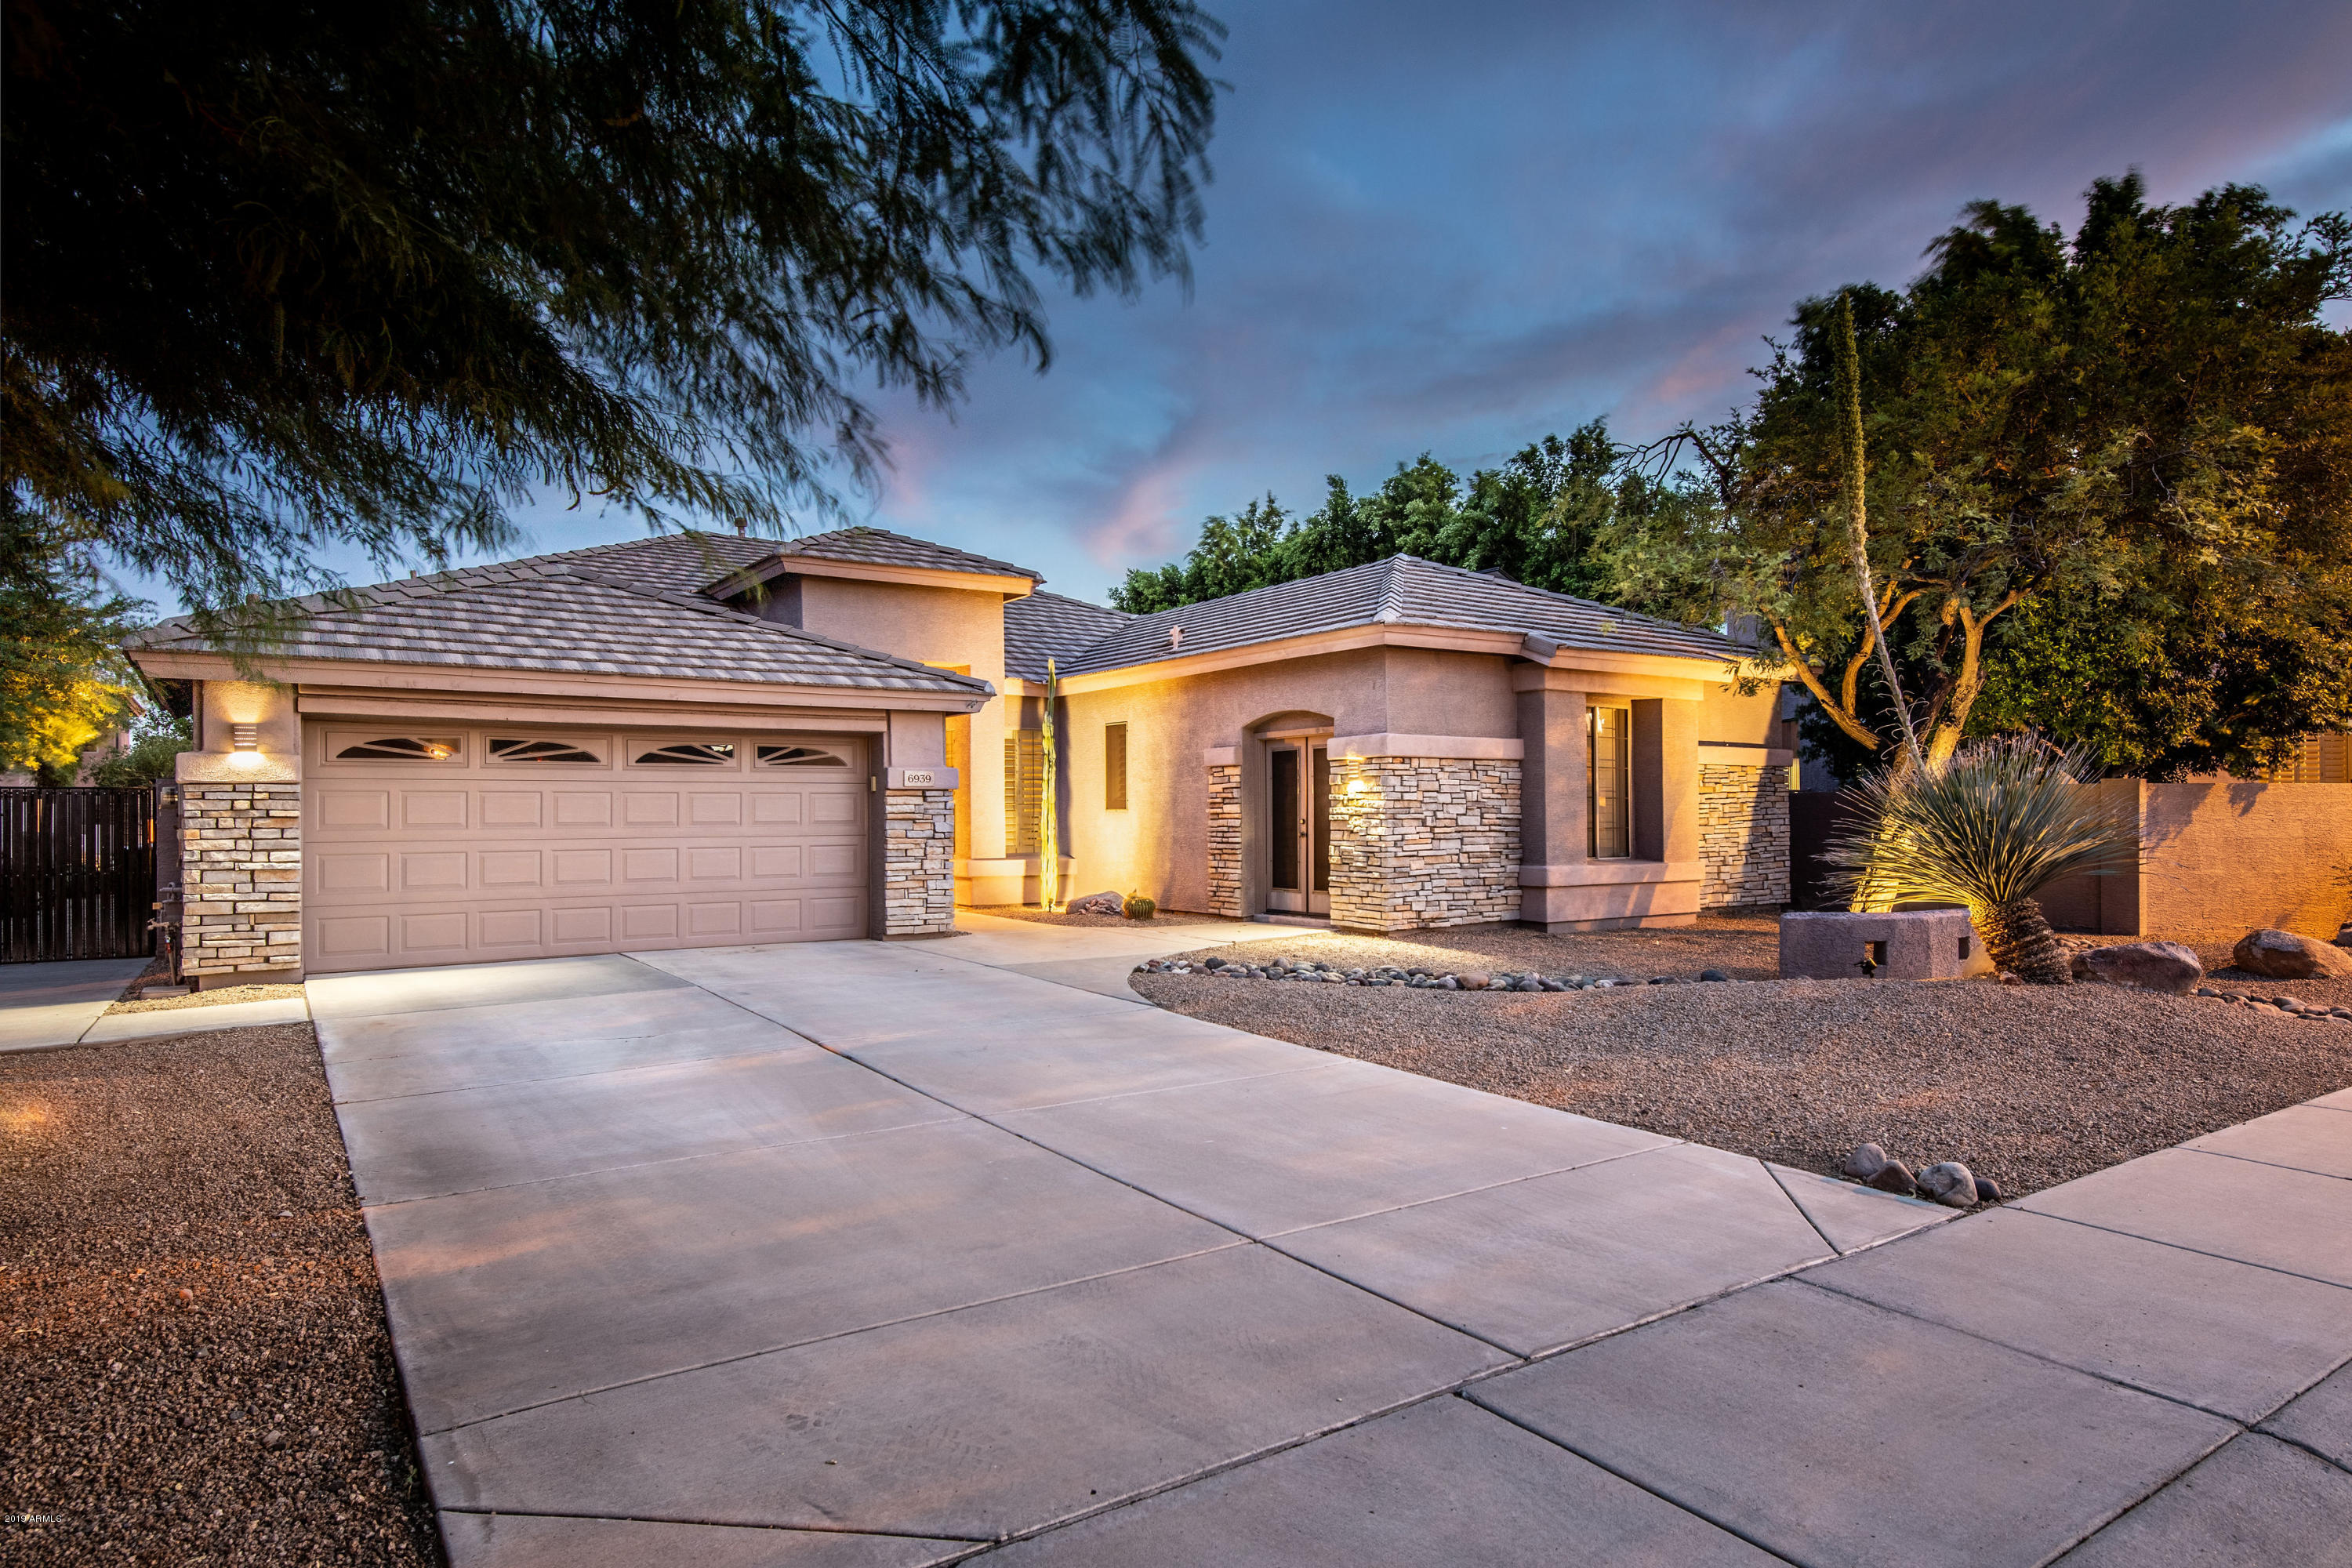 6939 W LARIAT Lane, Peoria in Maricopa County, AZ 85383 Home for Sale